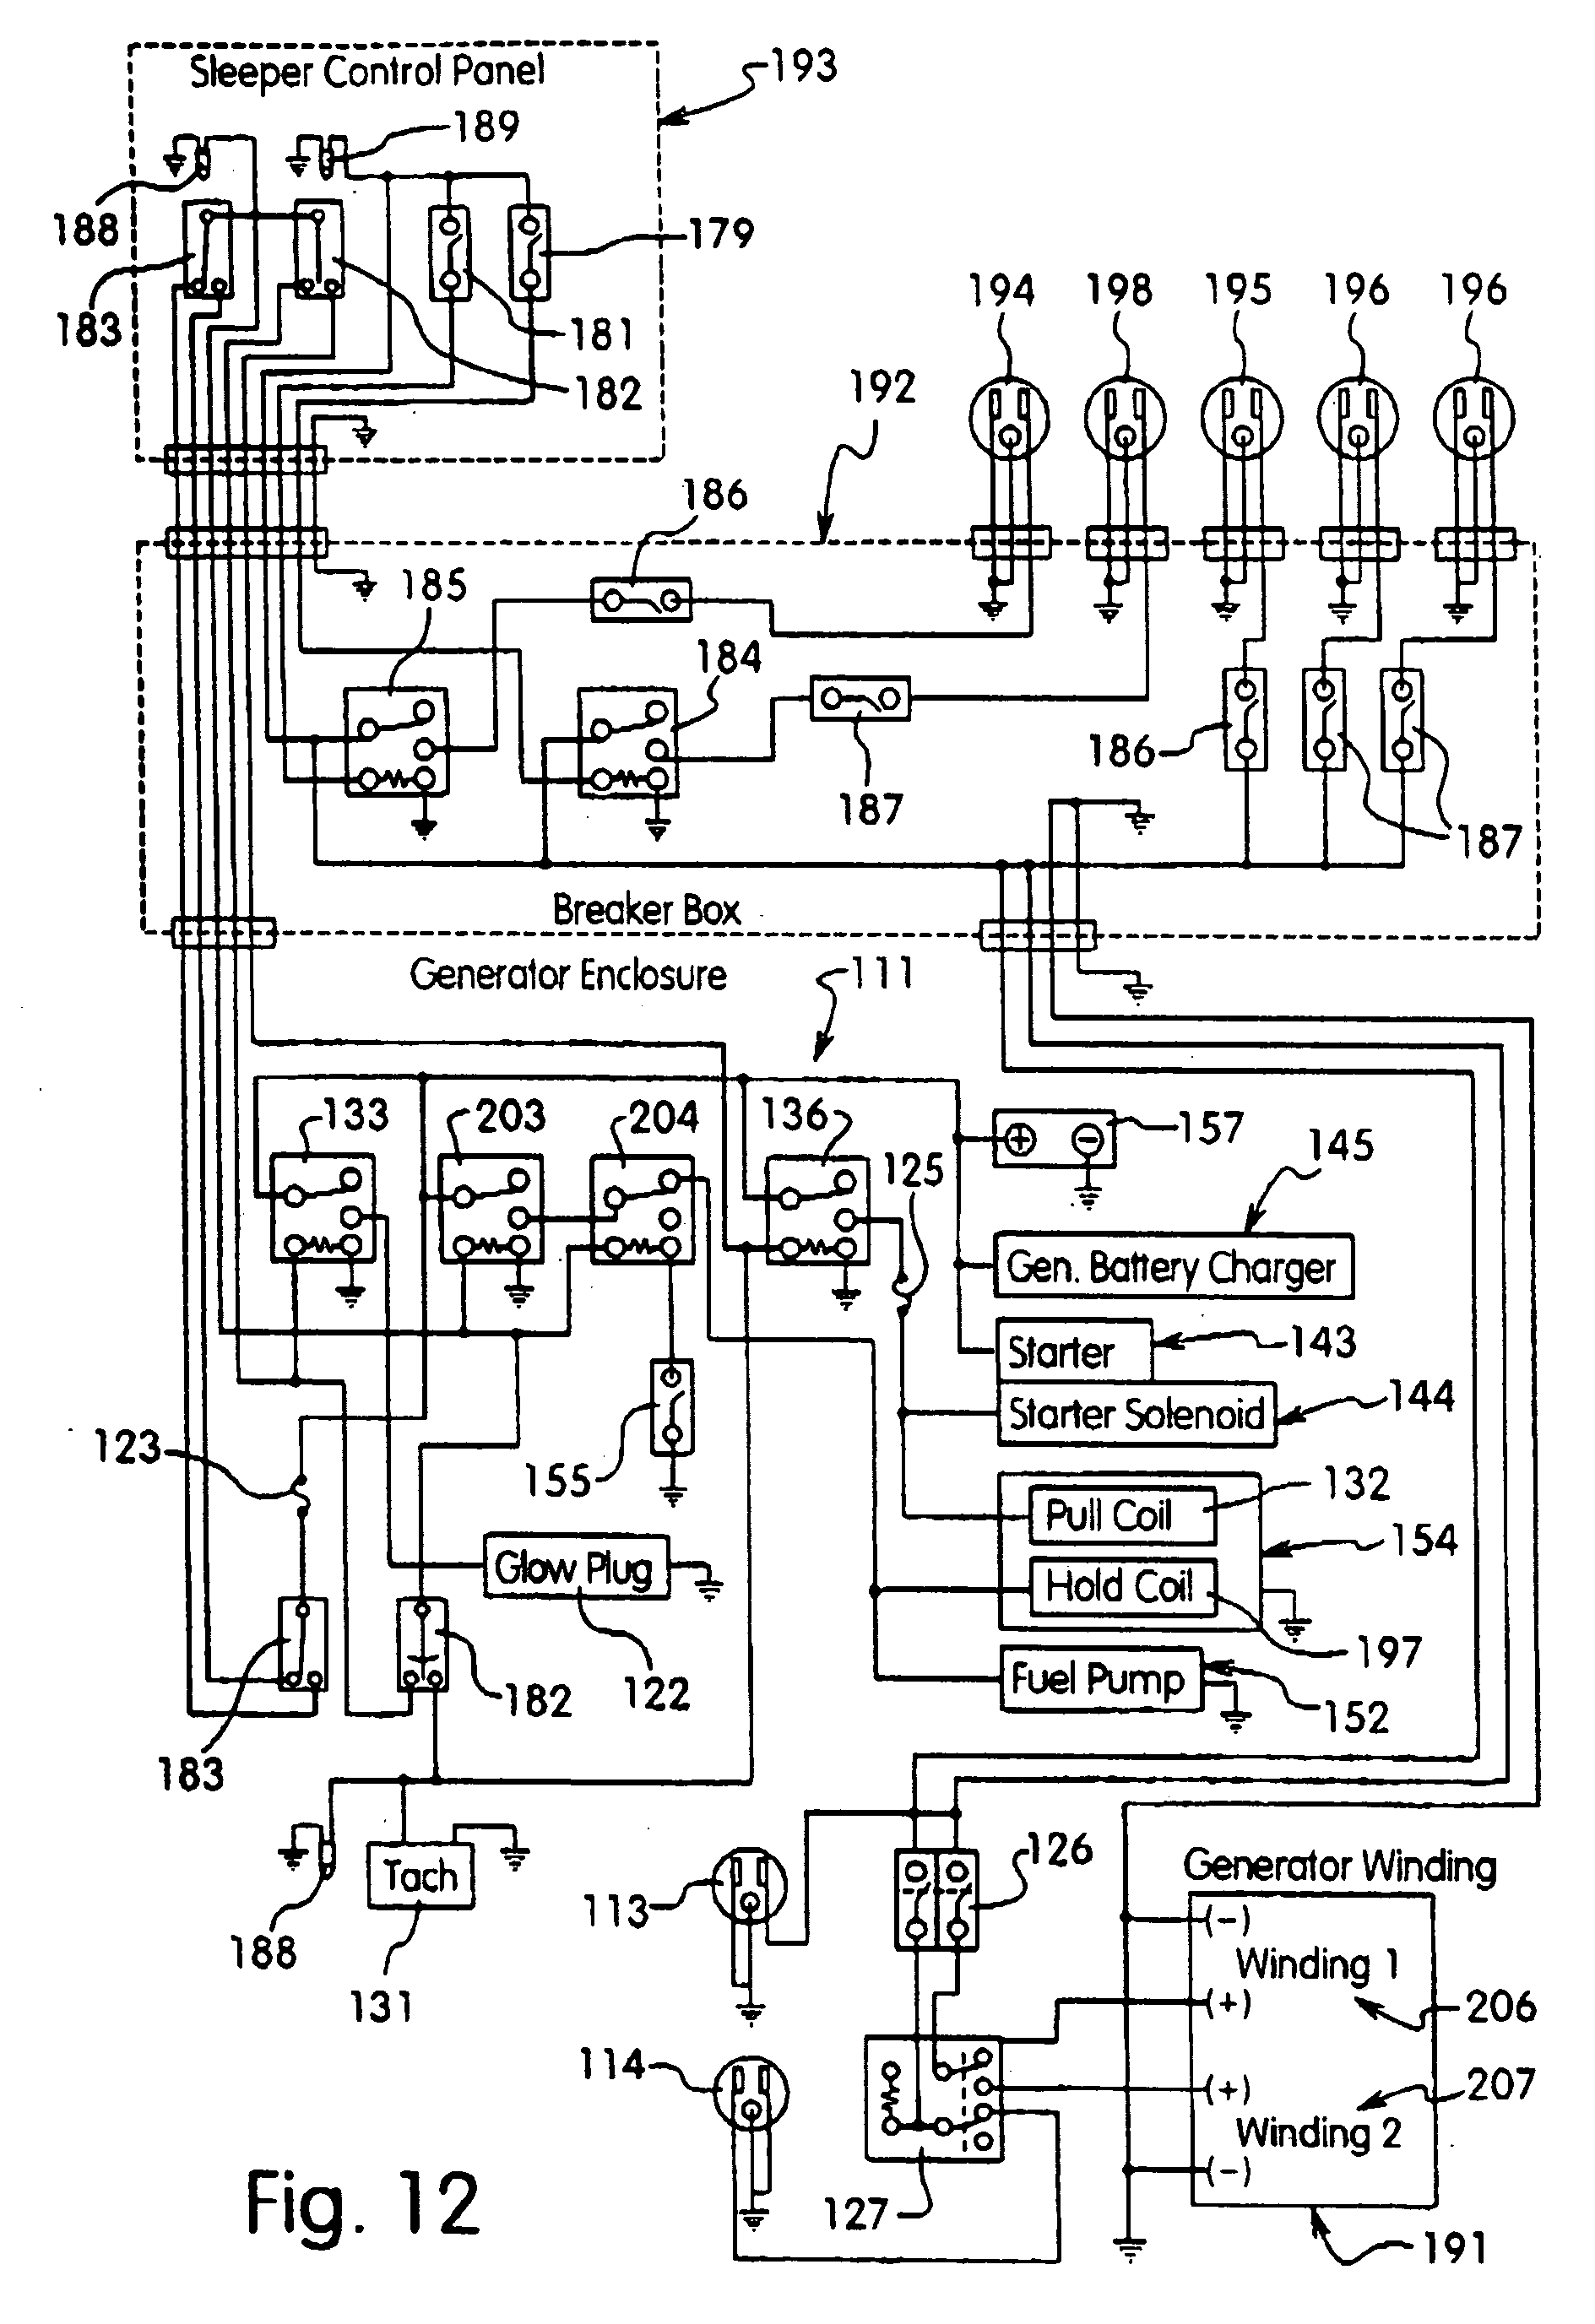 whelen edge wiring patent us20040231831 apparatus which eliminates the need  patent us20040231831 apparatus which eliminates the need